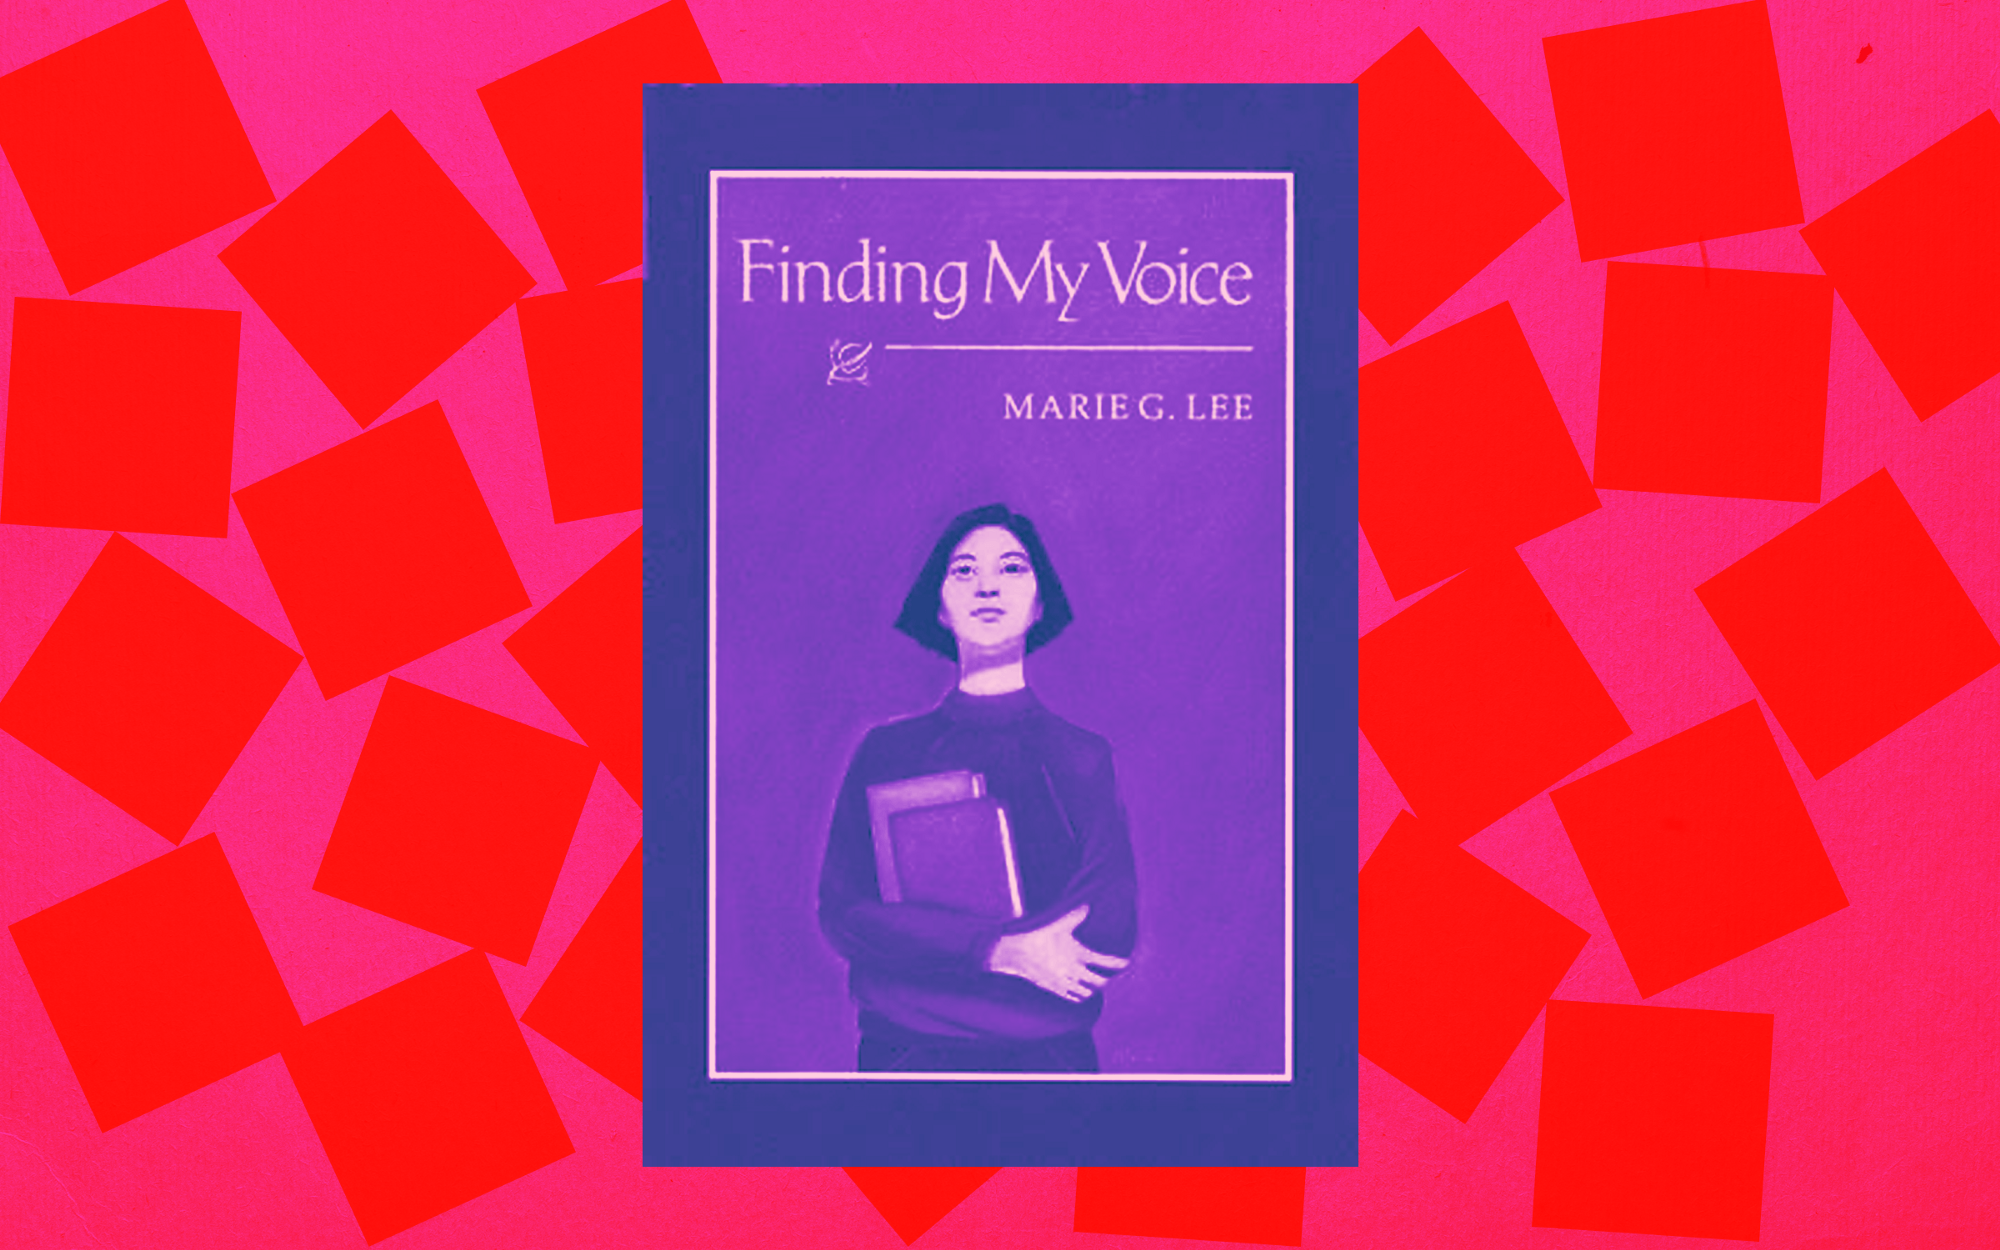 Finding My Voice book cover against a red and bright pink patterned background.